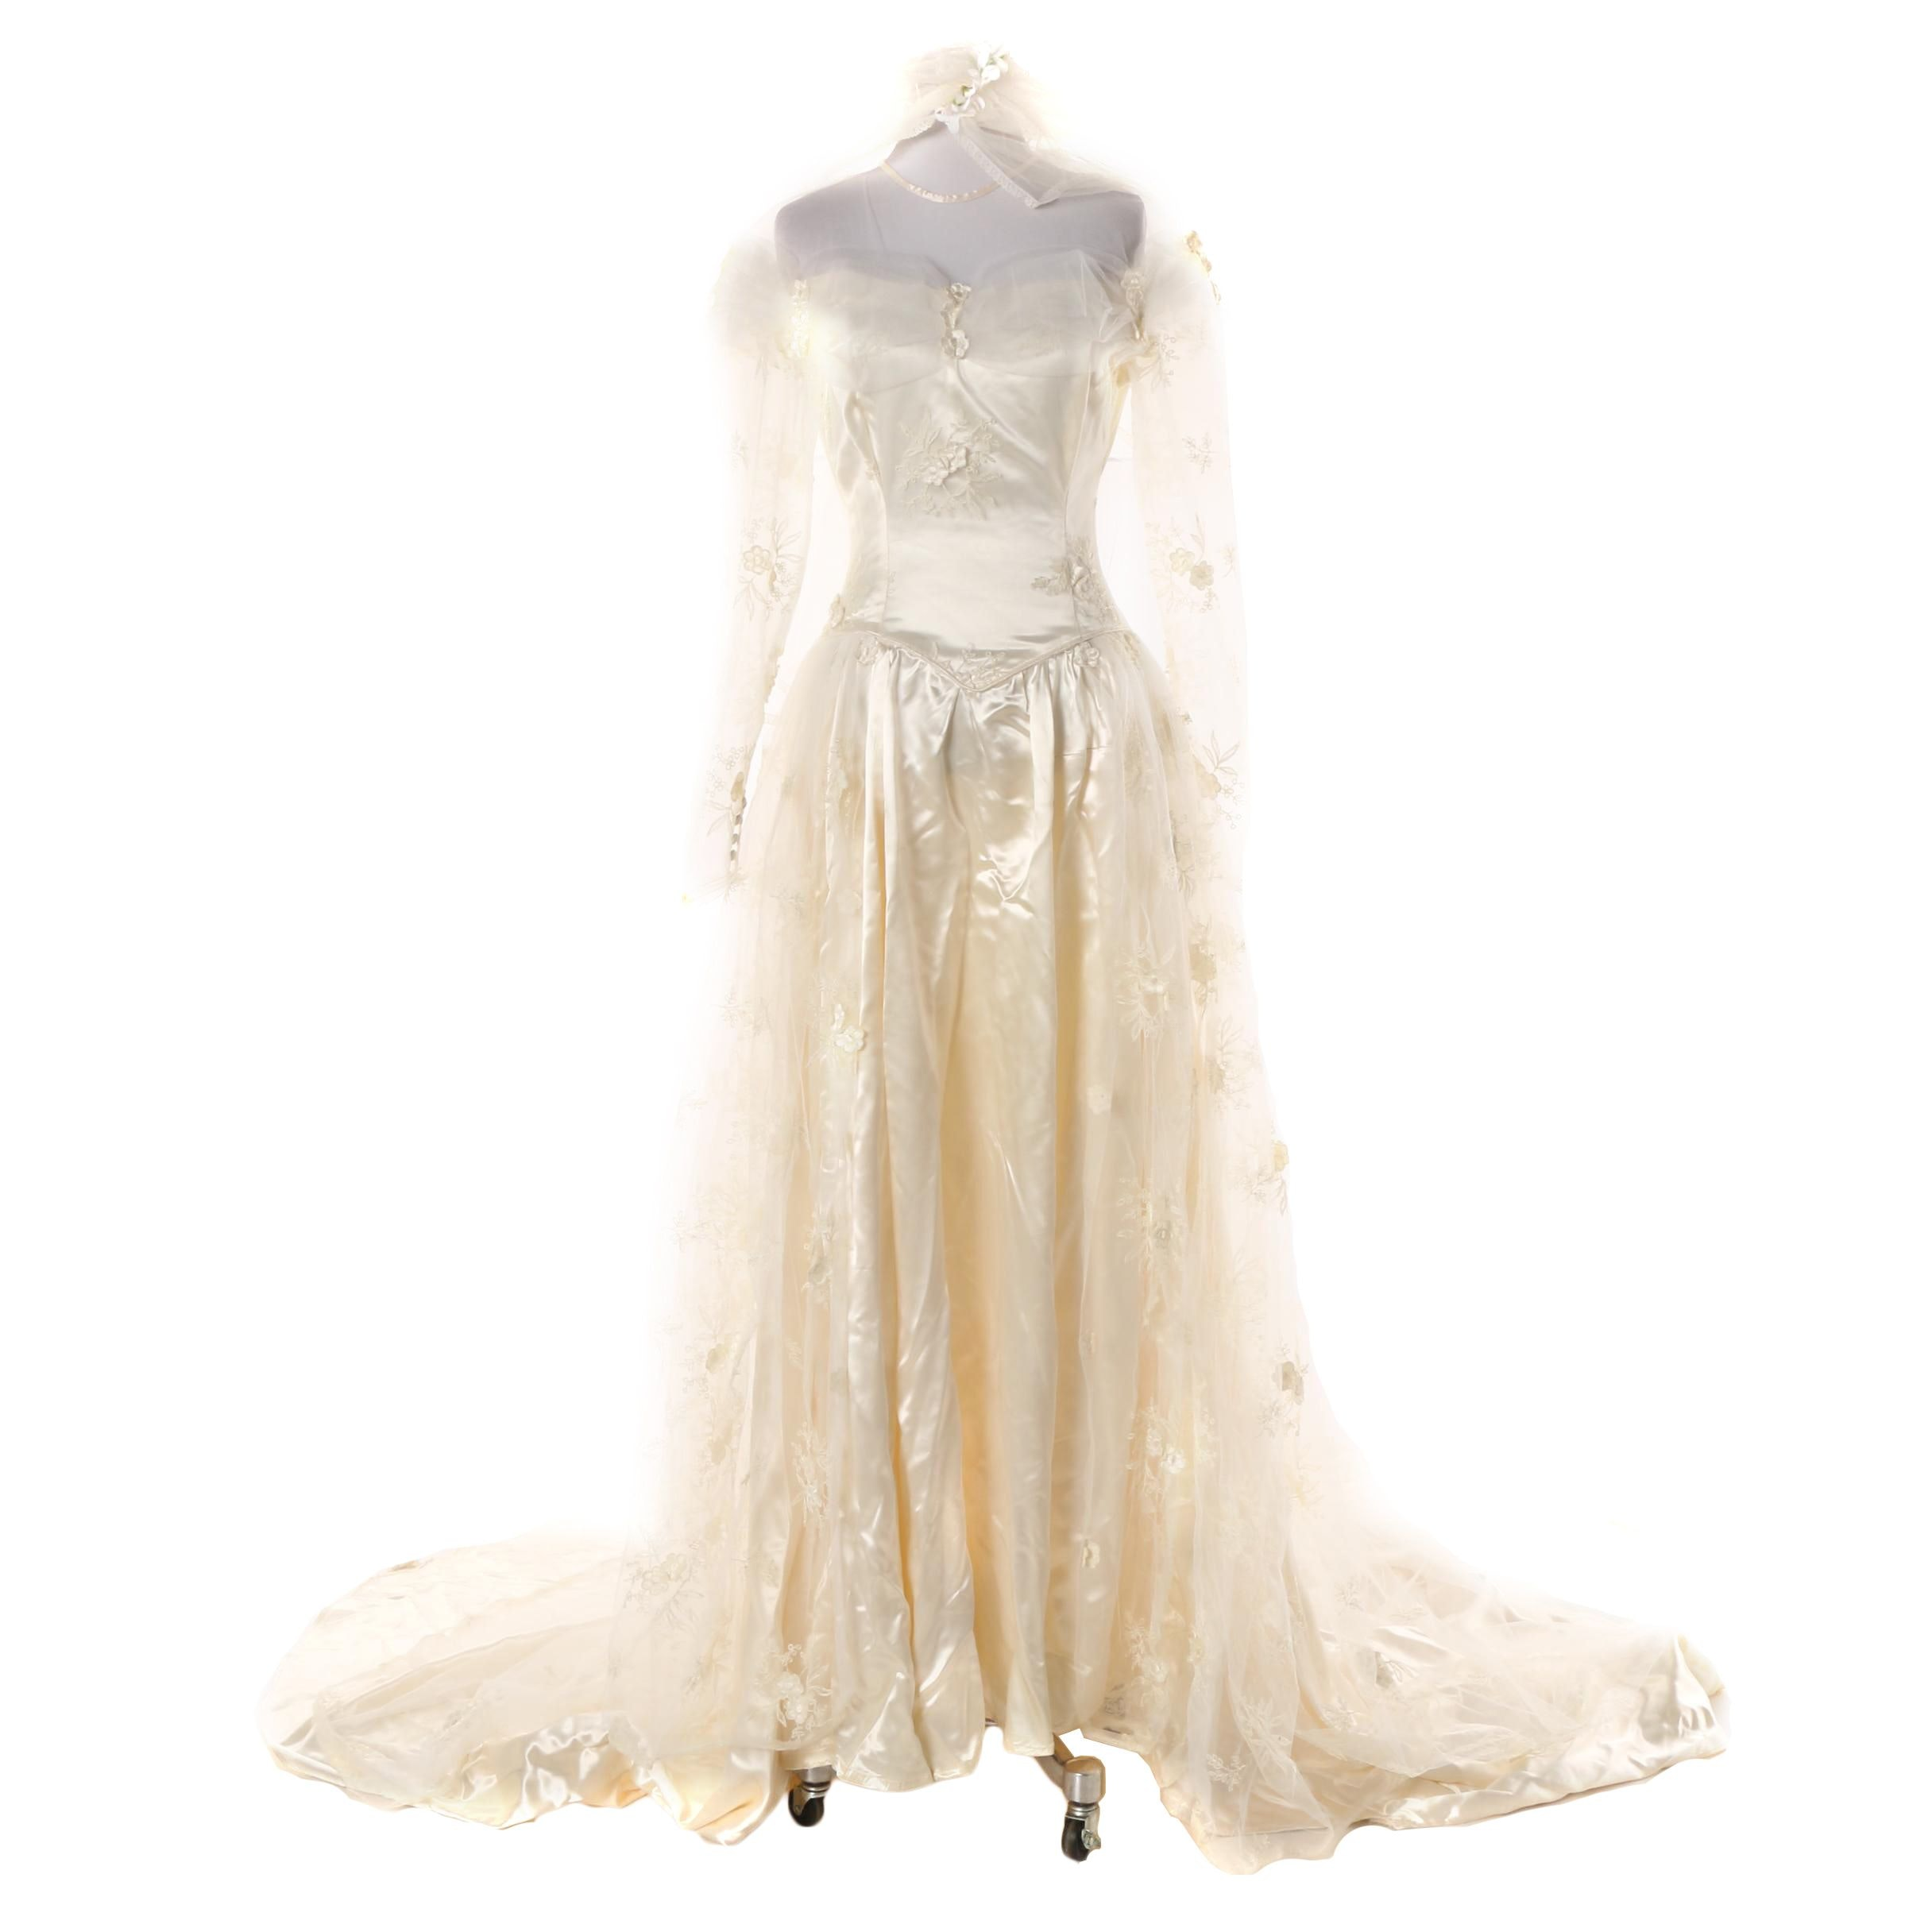 Circa 1950s Ivory Satin Wedding Gown with Embroidered Lace Train